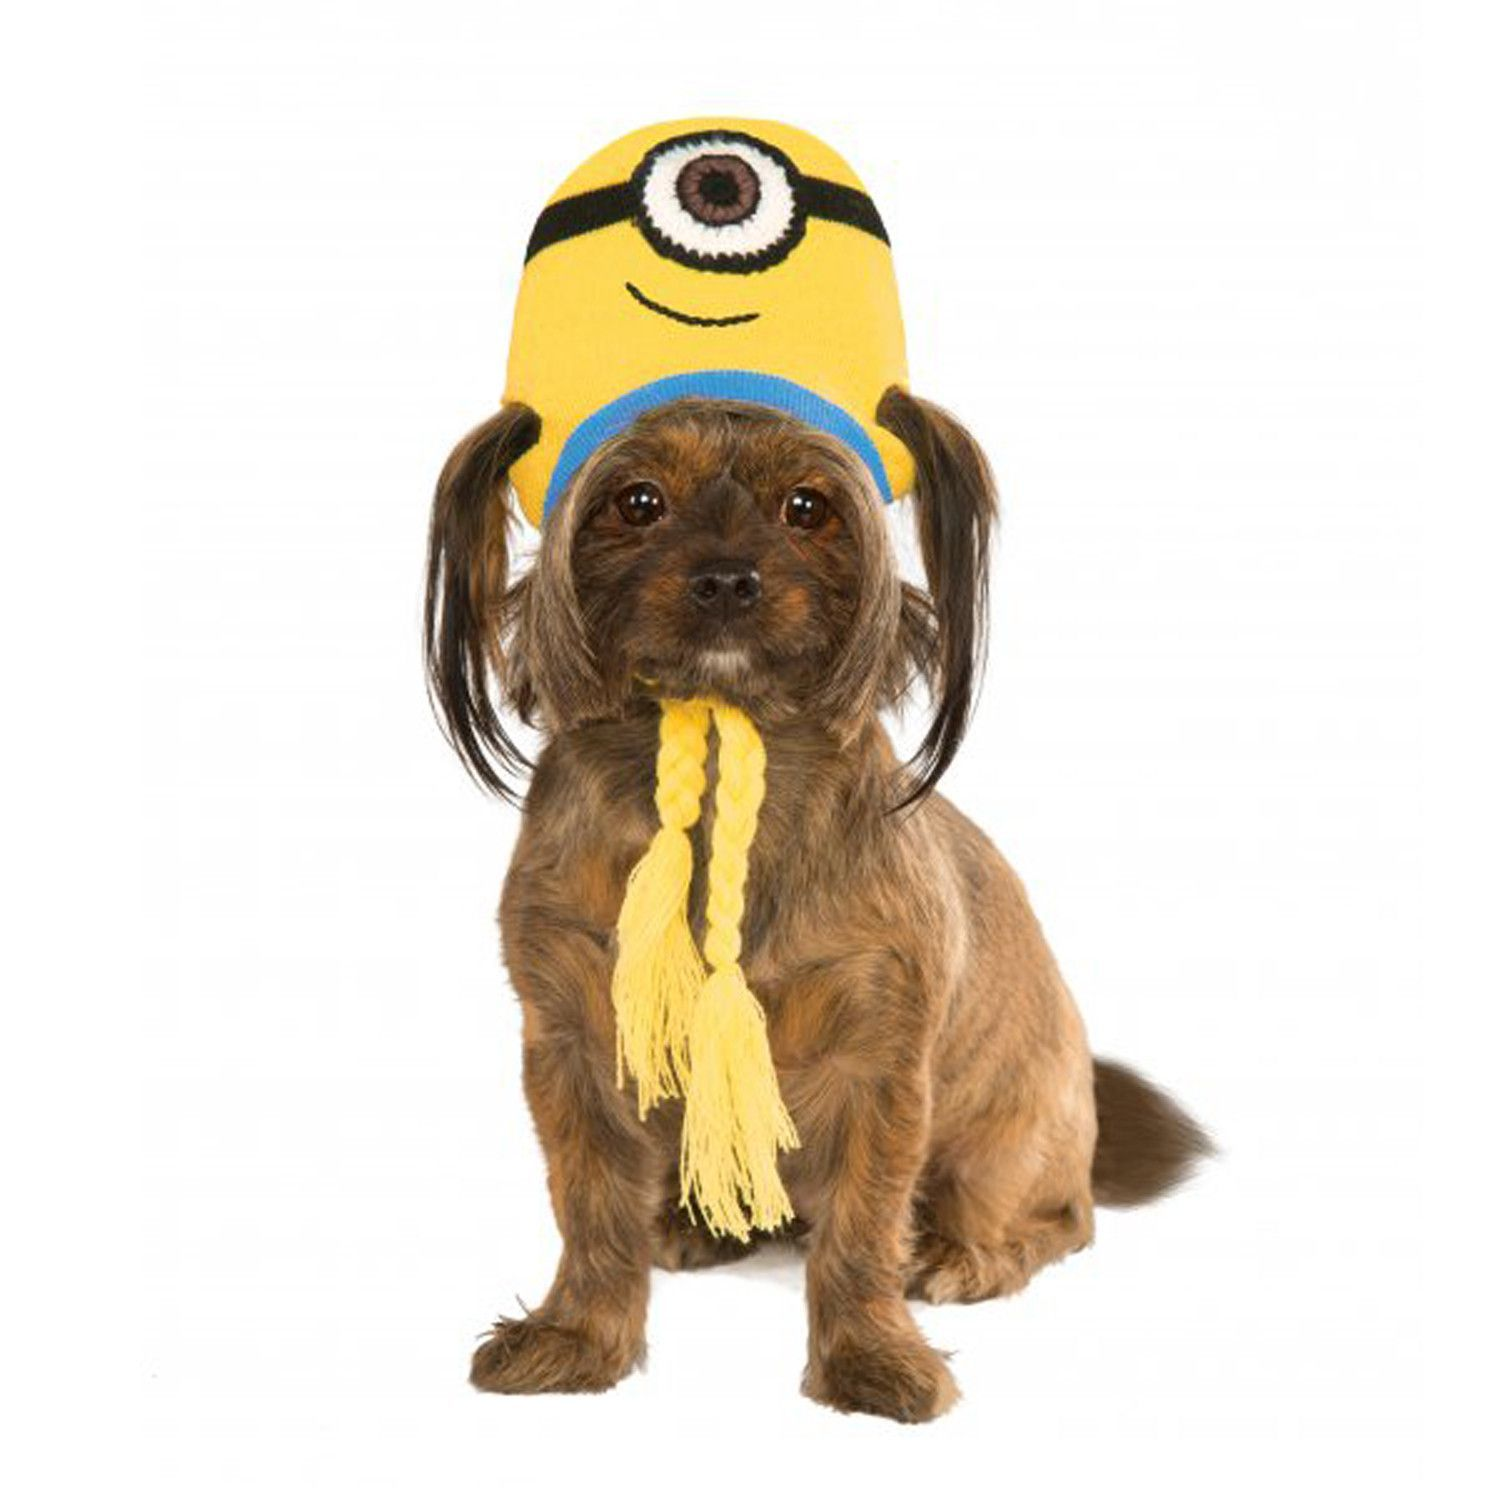 ef05a5a4ecd2d Make dressing up fun and easy for you and your dog with the Minion Knit Dog  Hat Costume Stuart this Halloween! - Stuart the Minion costume knit hat with  ...